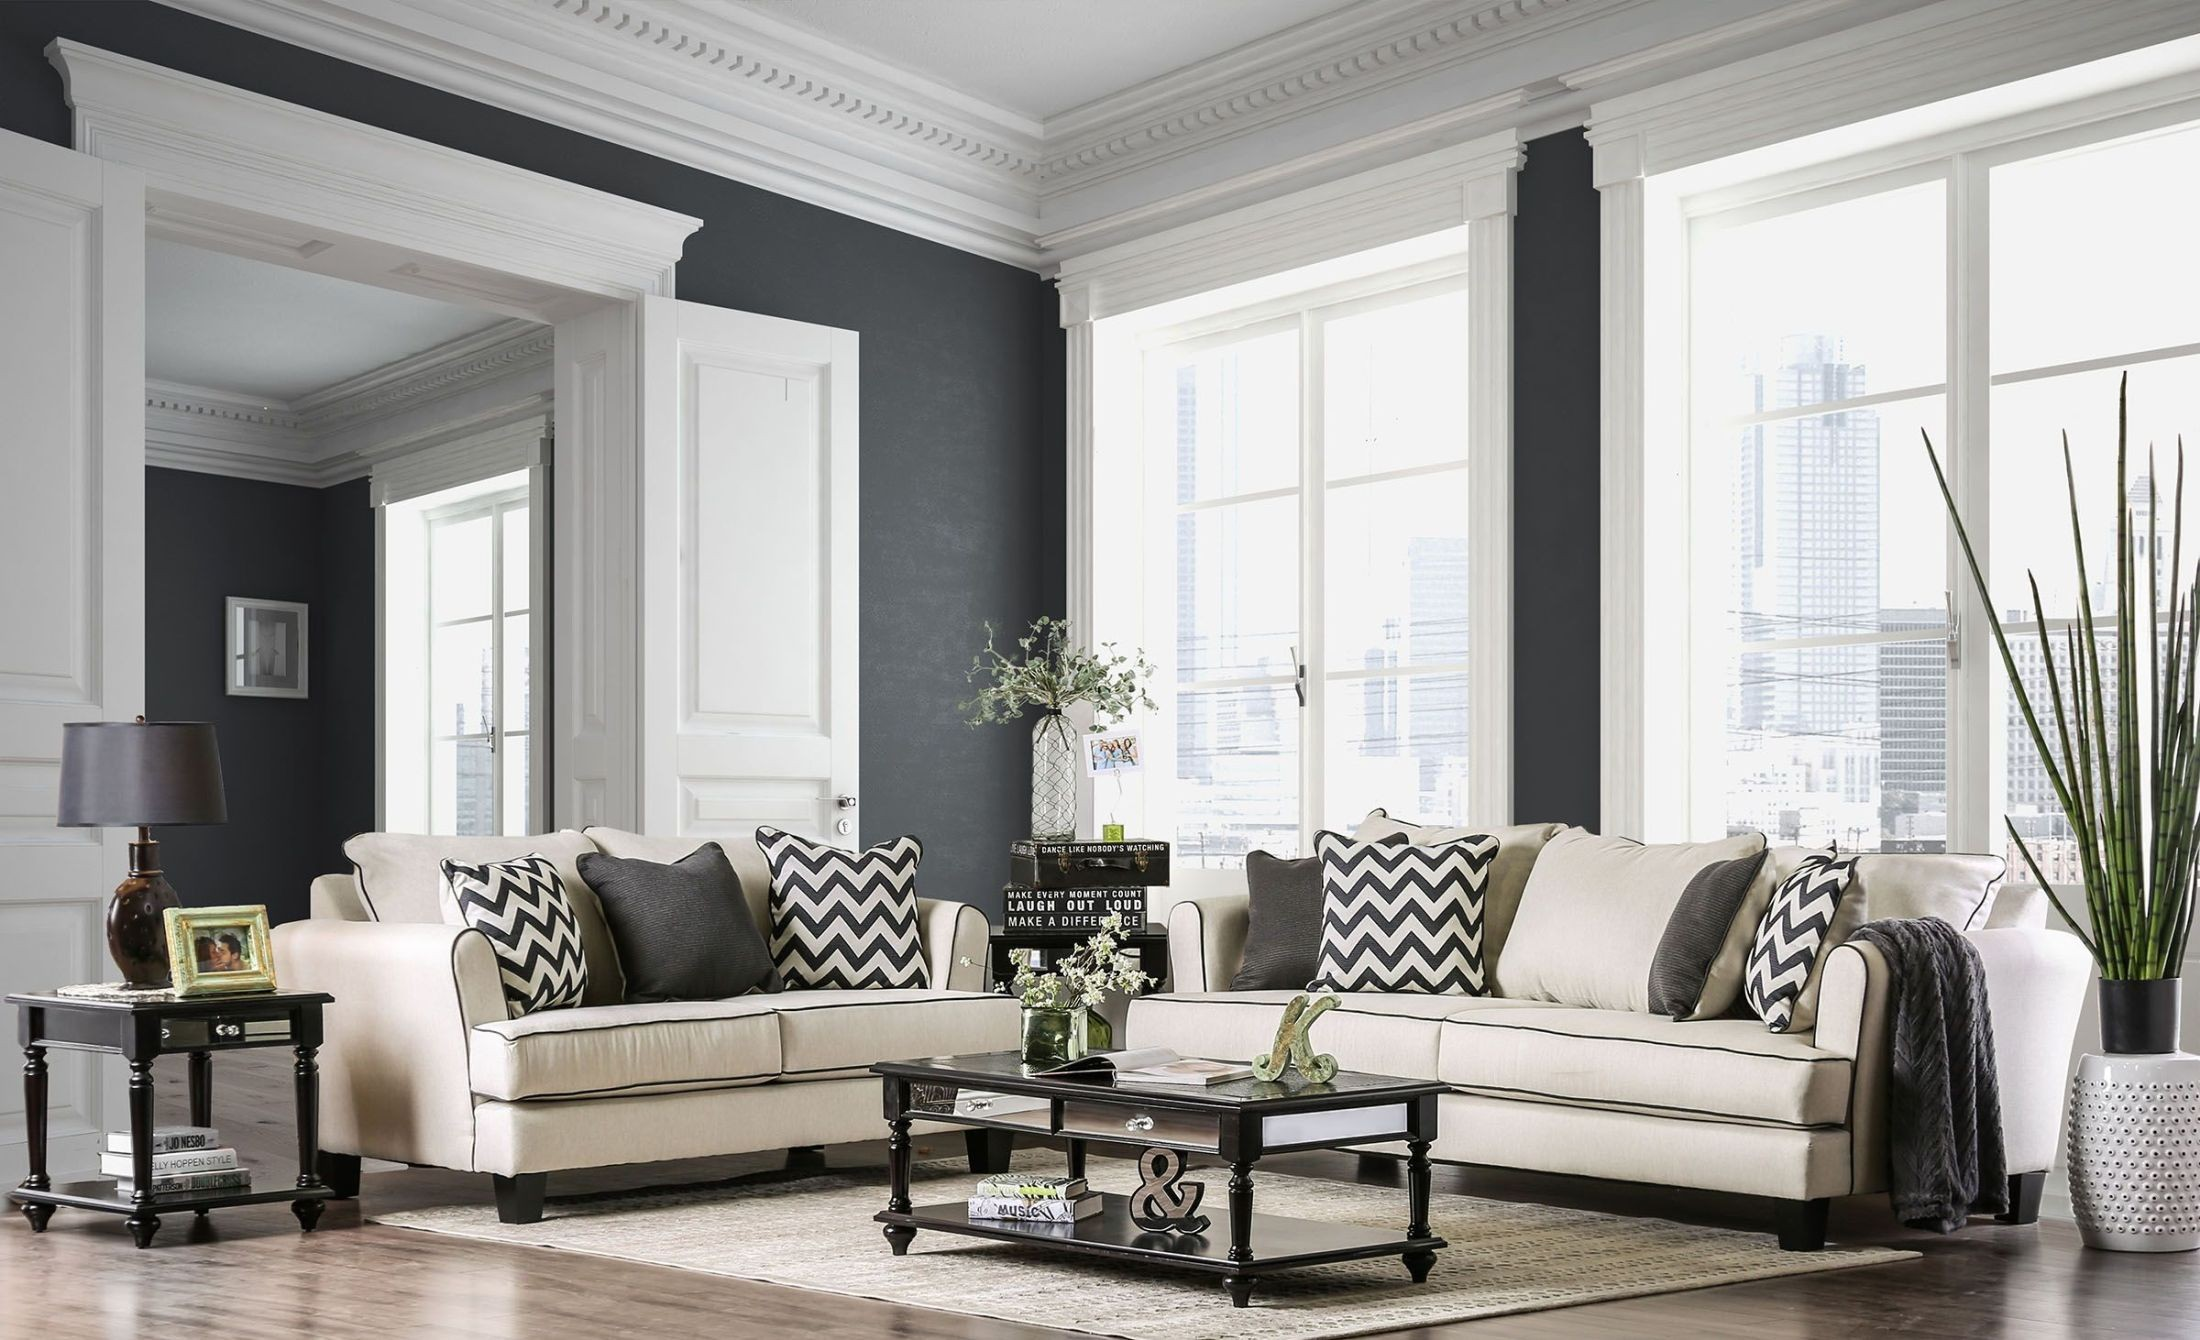 Percey OffWhite Living Room Set from Furniture of America